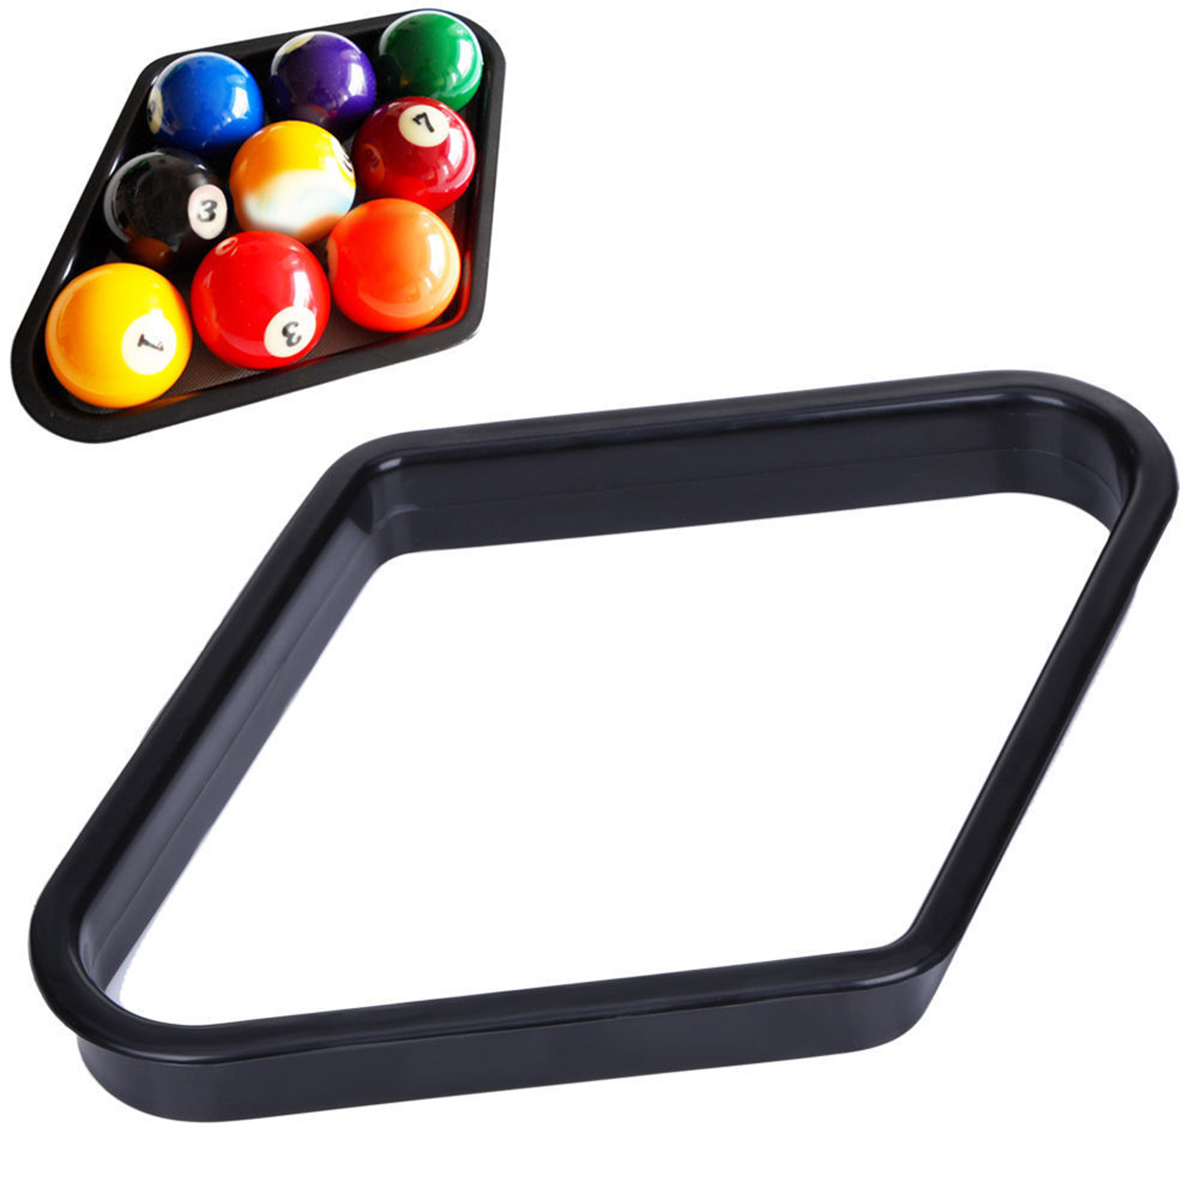 9 Ball Pool Table Billiards Table Rack Plastic Triangle Rack Standard 2 1/4 Size Balls Snooker Billiard Heavy Duty Accessory